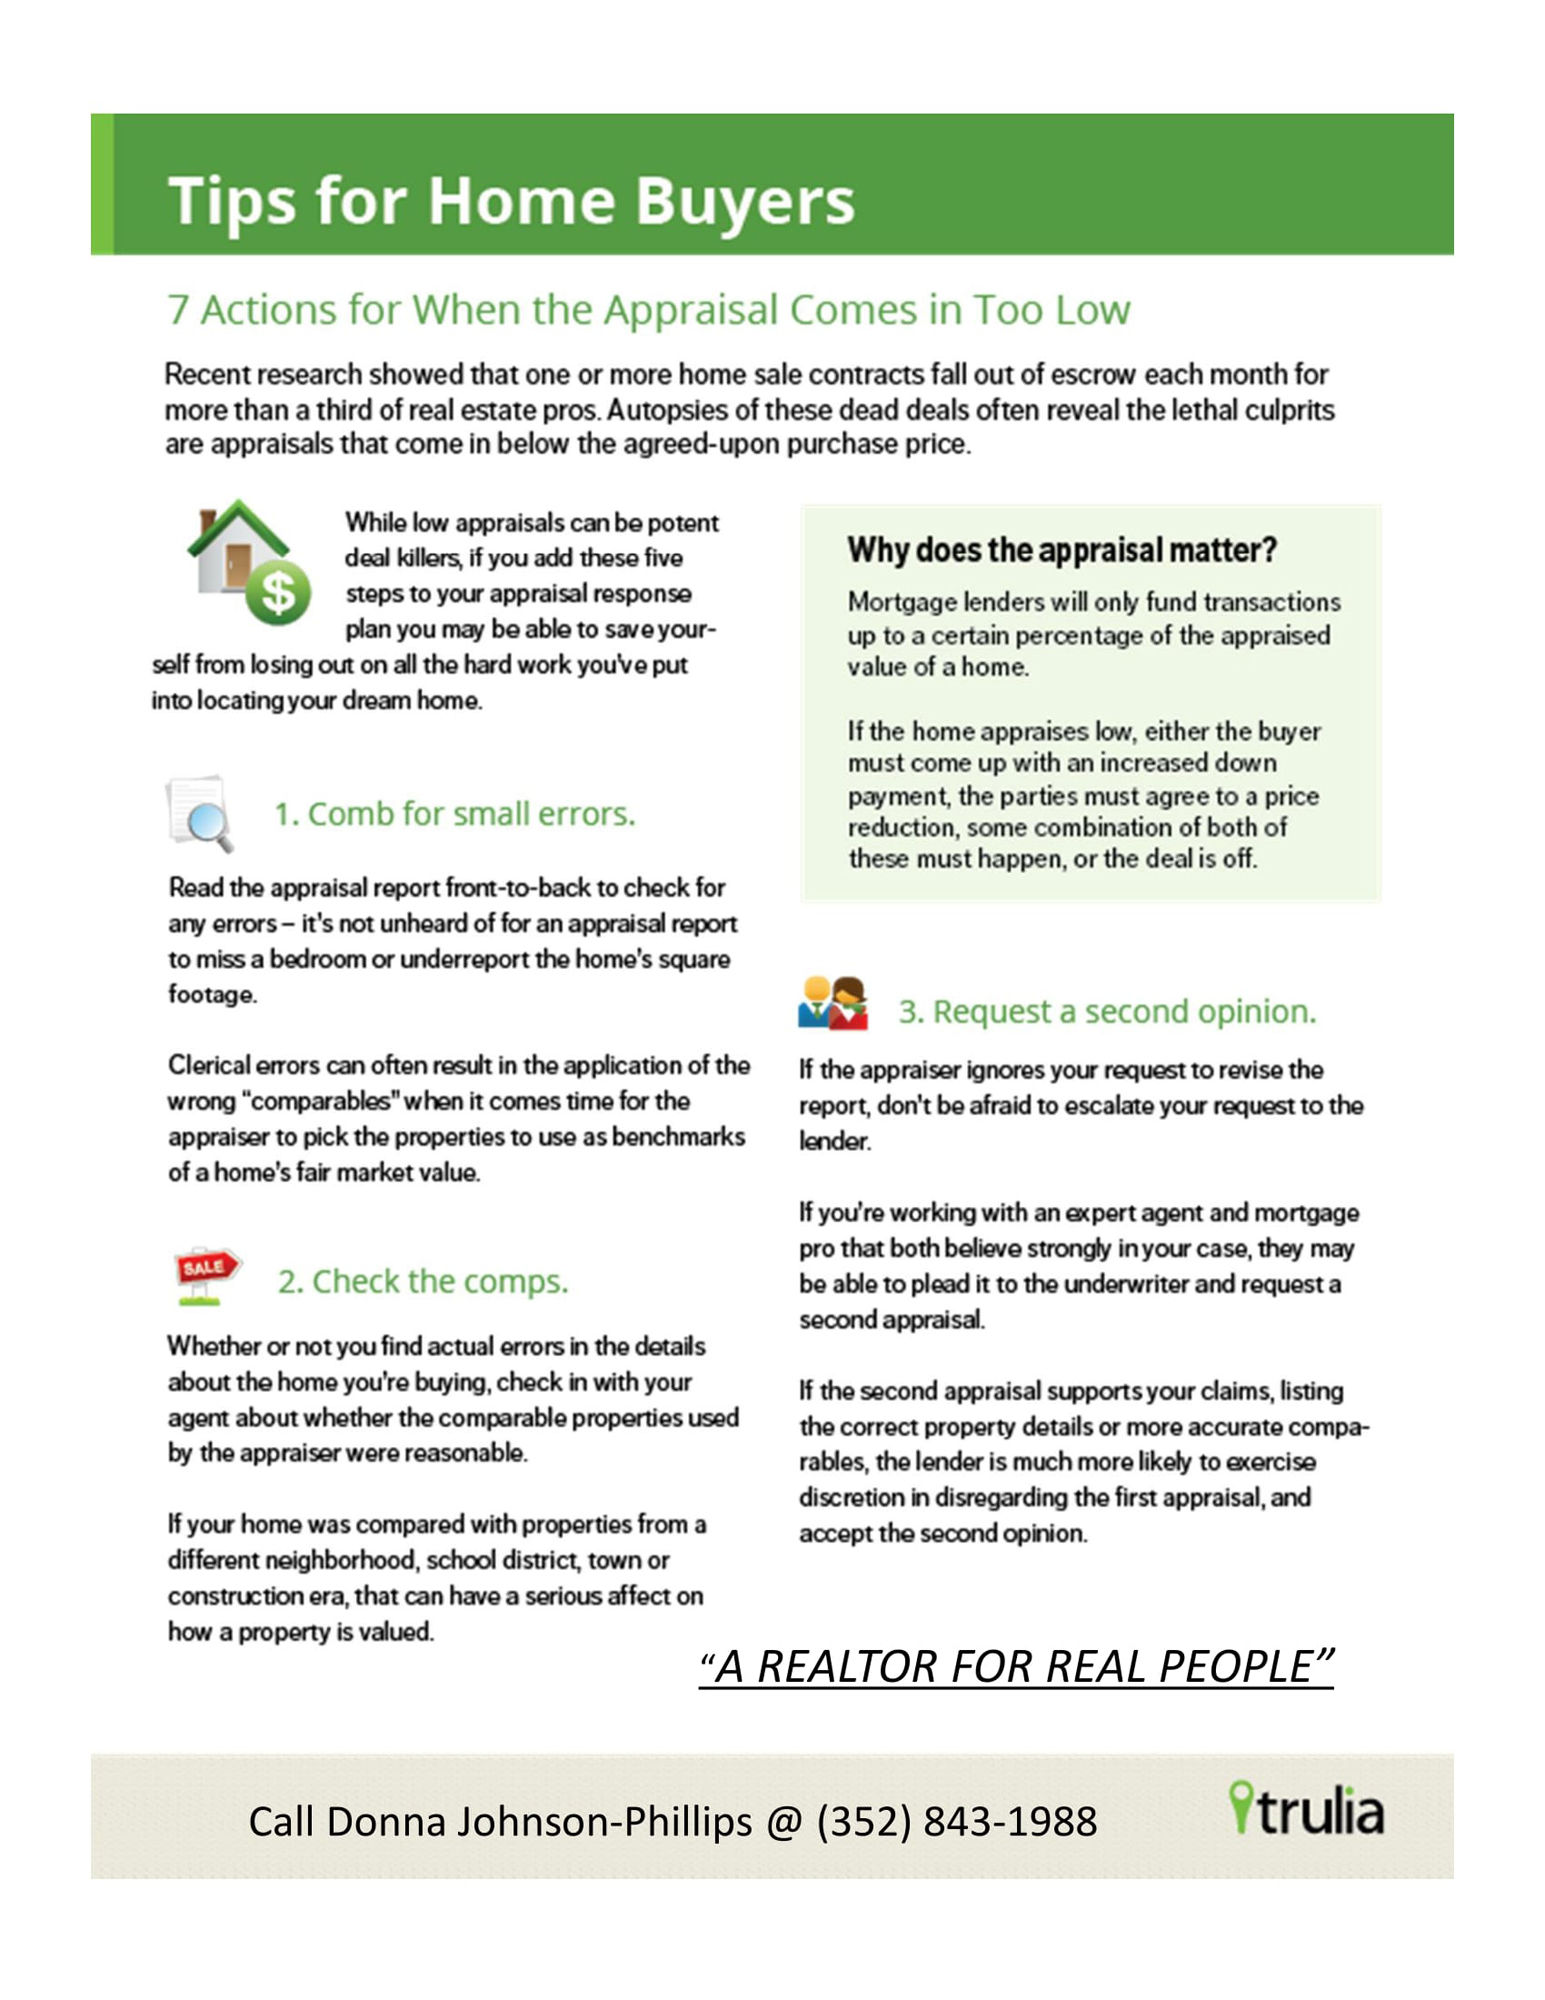 Low appraisals-7actions to take